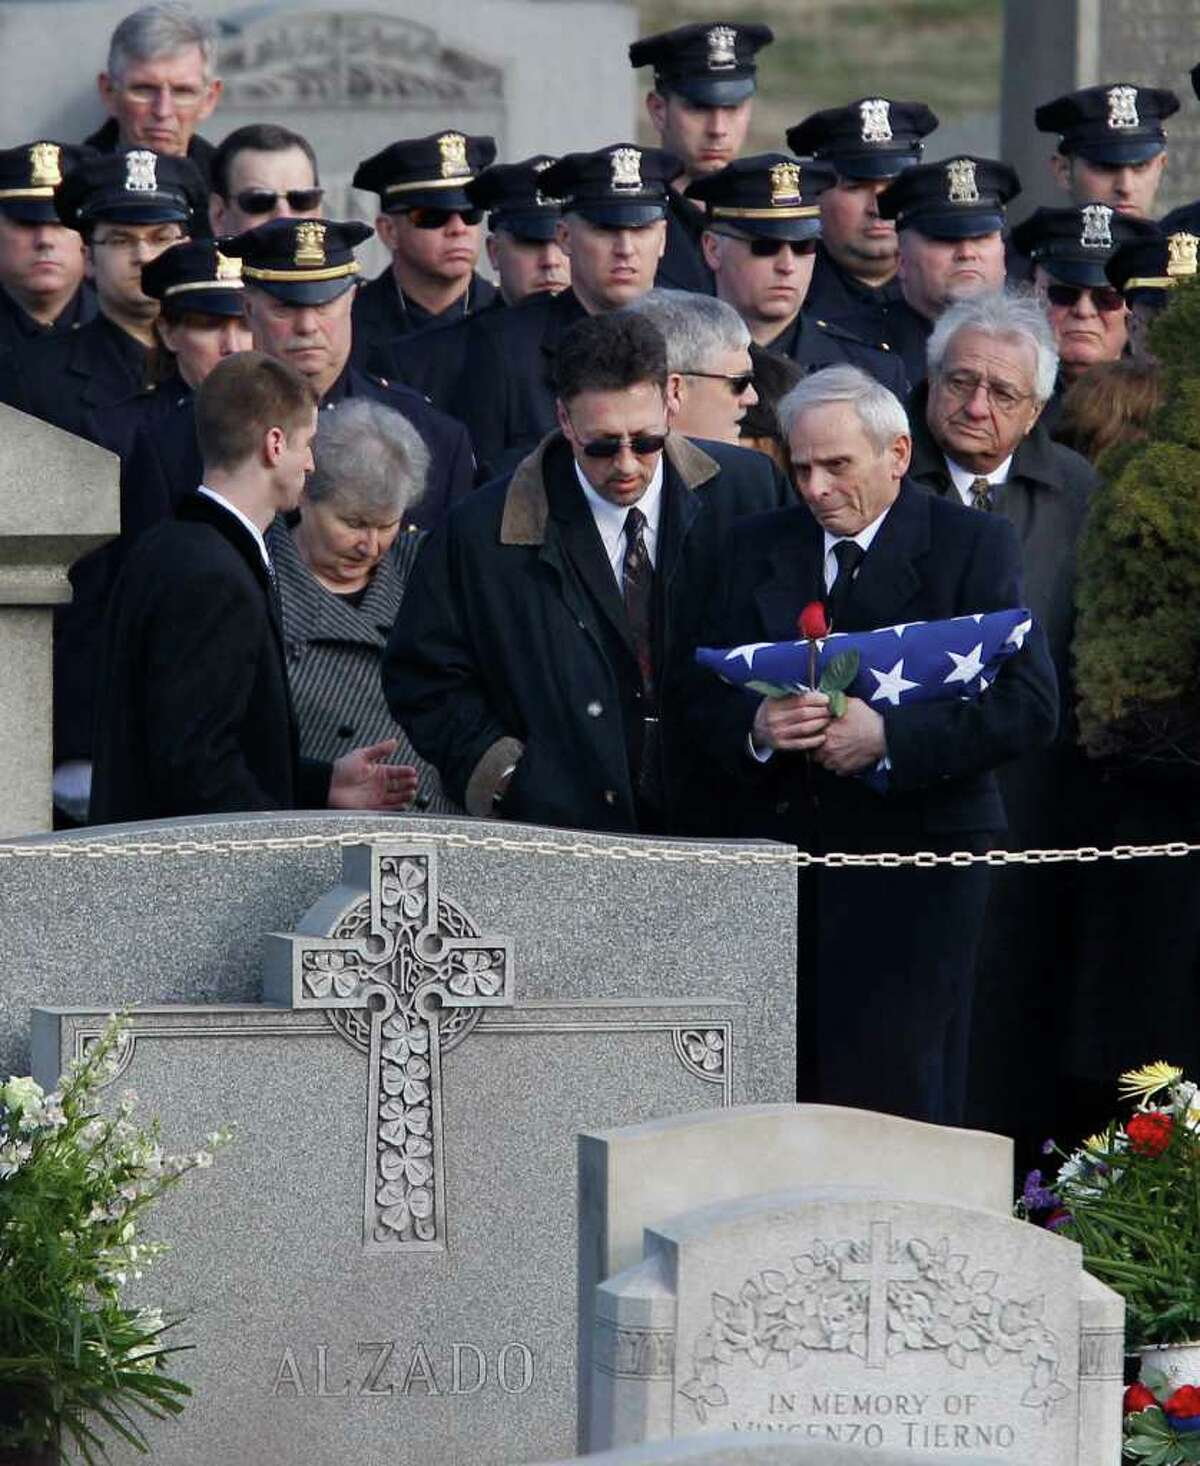 Police officers look on as a family member is brought toward the gravesite at the burial of slain Poughkeepsie police Detective John Falcone at Brooklyn's Holy Cross Cemetery in New York, Thursday, Feb. 24, 2011. Falcone was gunned down as he helped rescue a 3-year-old girl. (AP Photo/Kathy Willens)